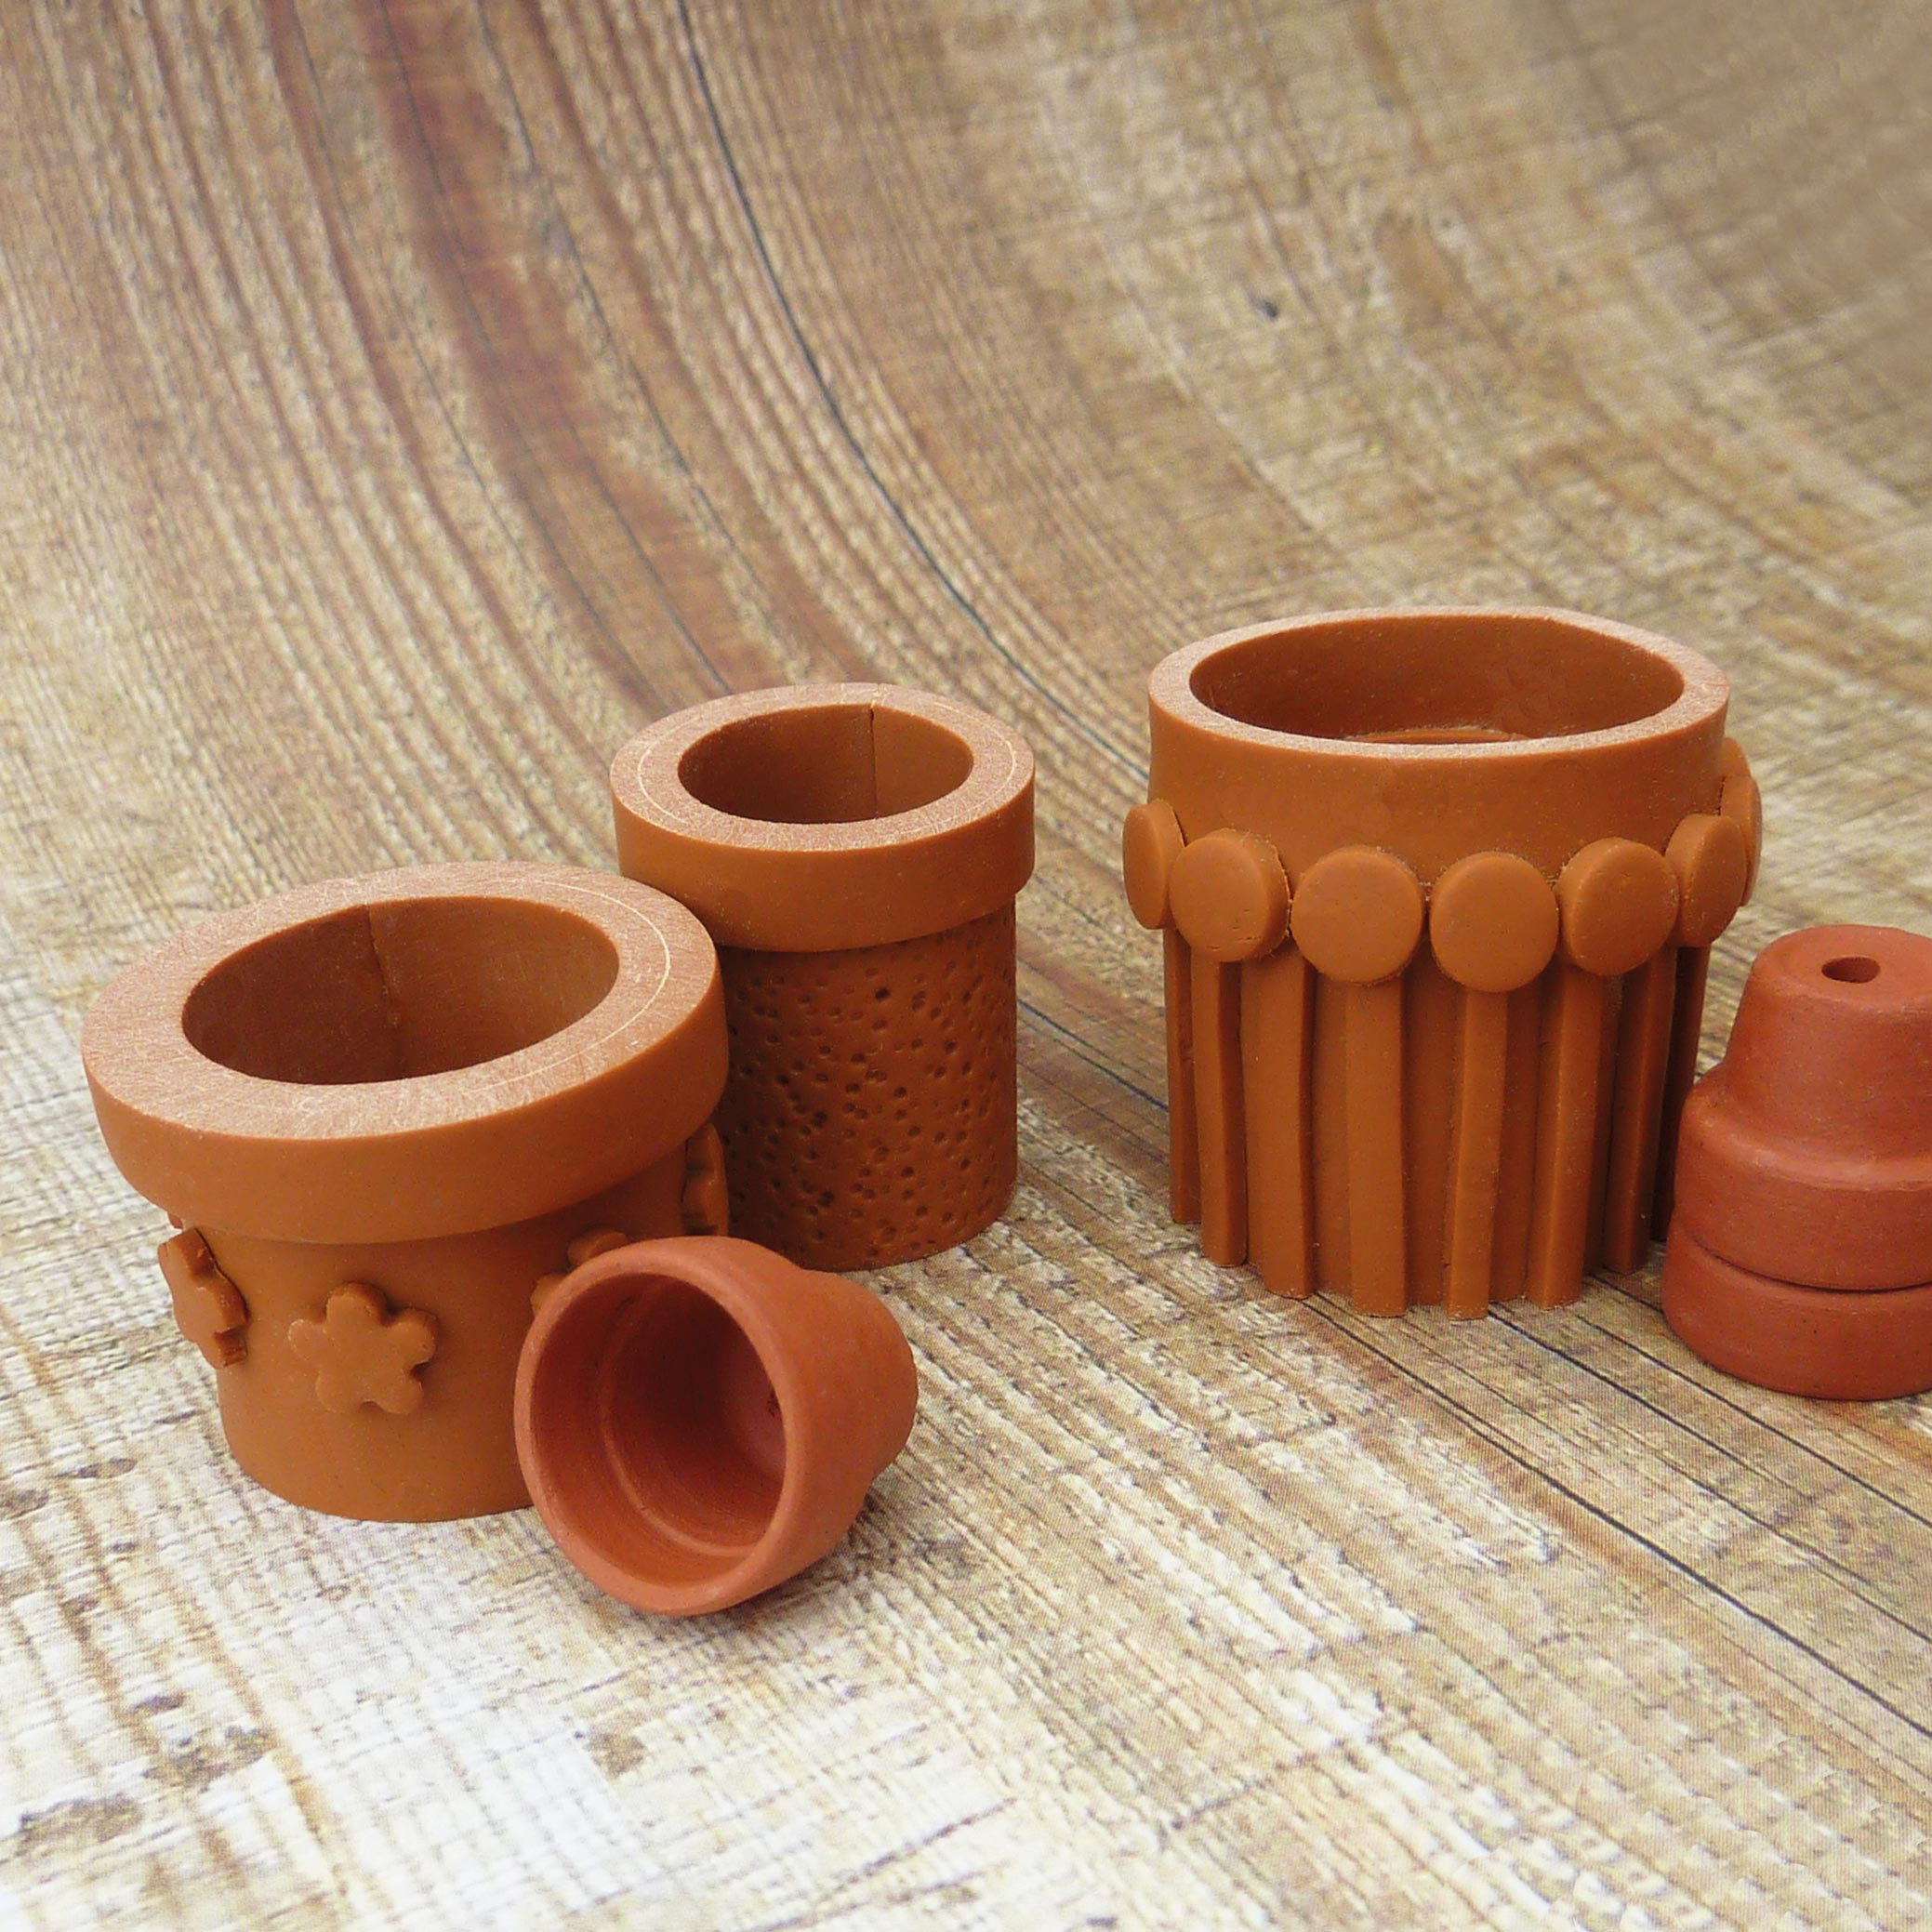 miniature-terracotta-pots-polymer-clay